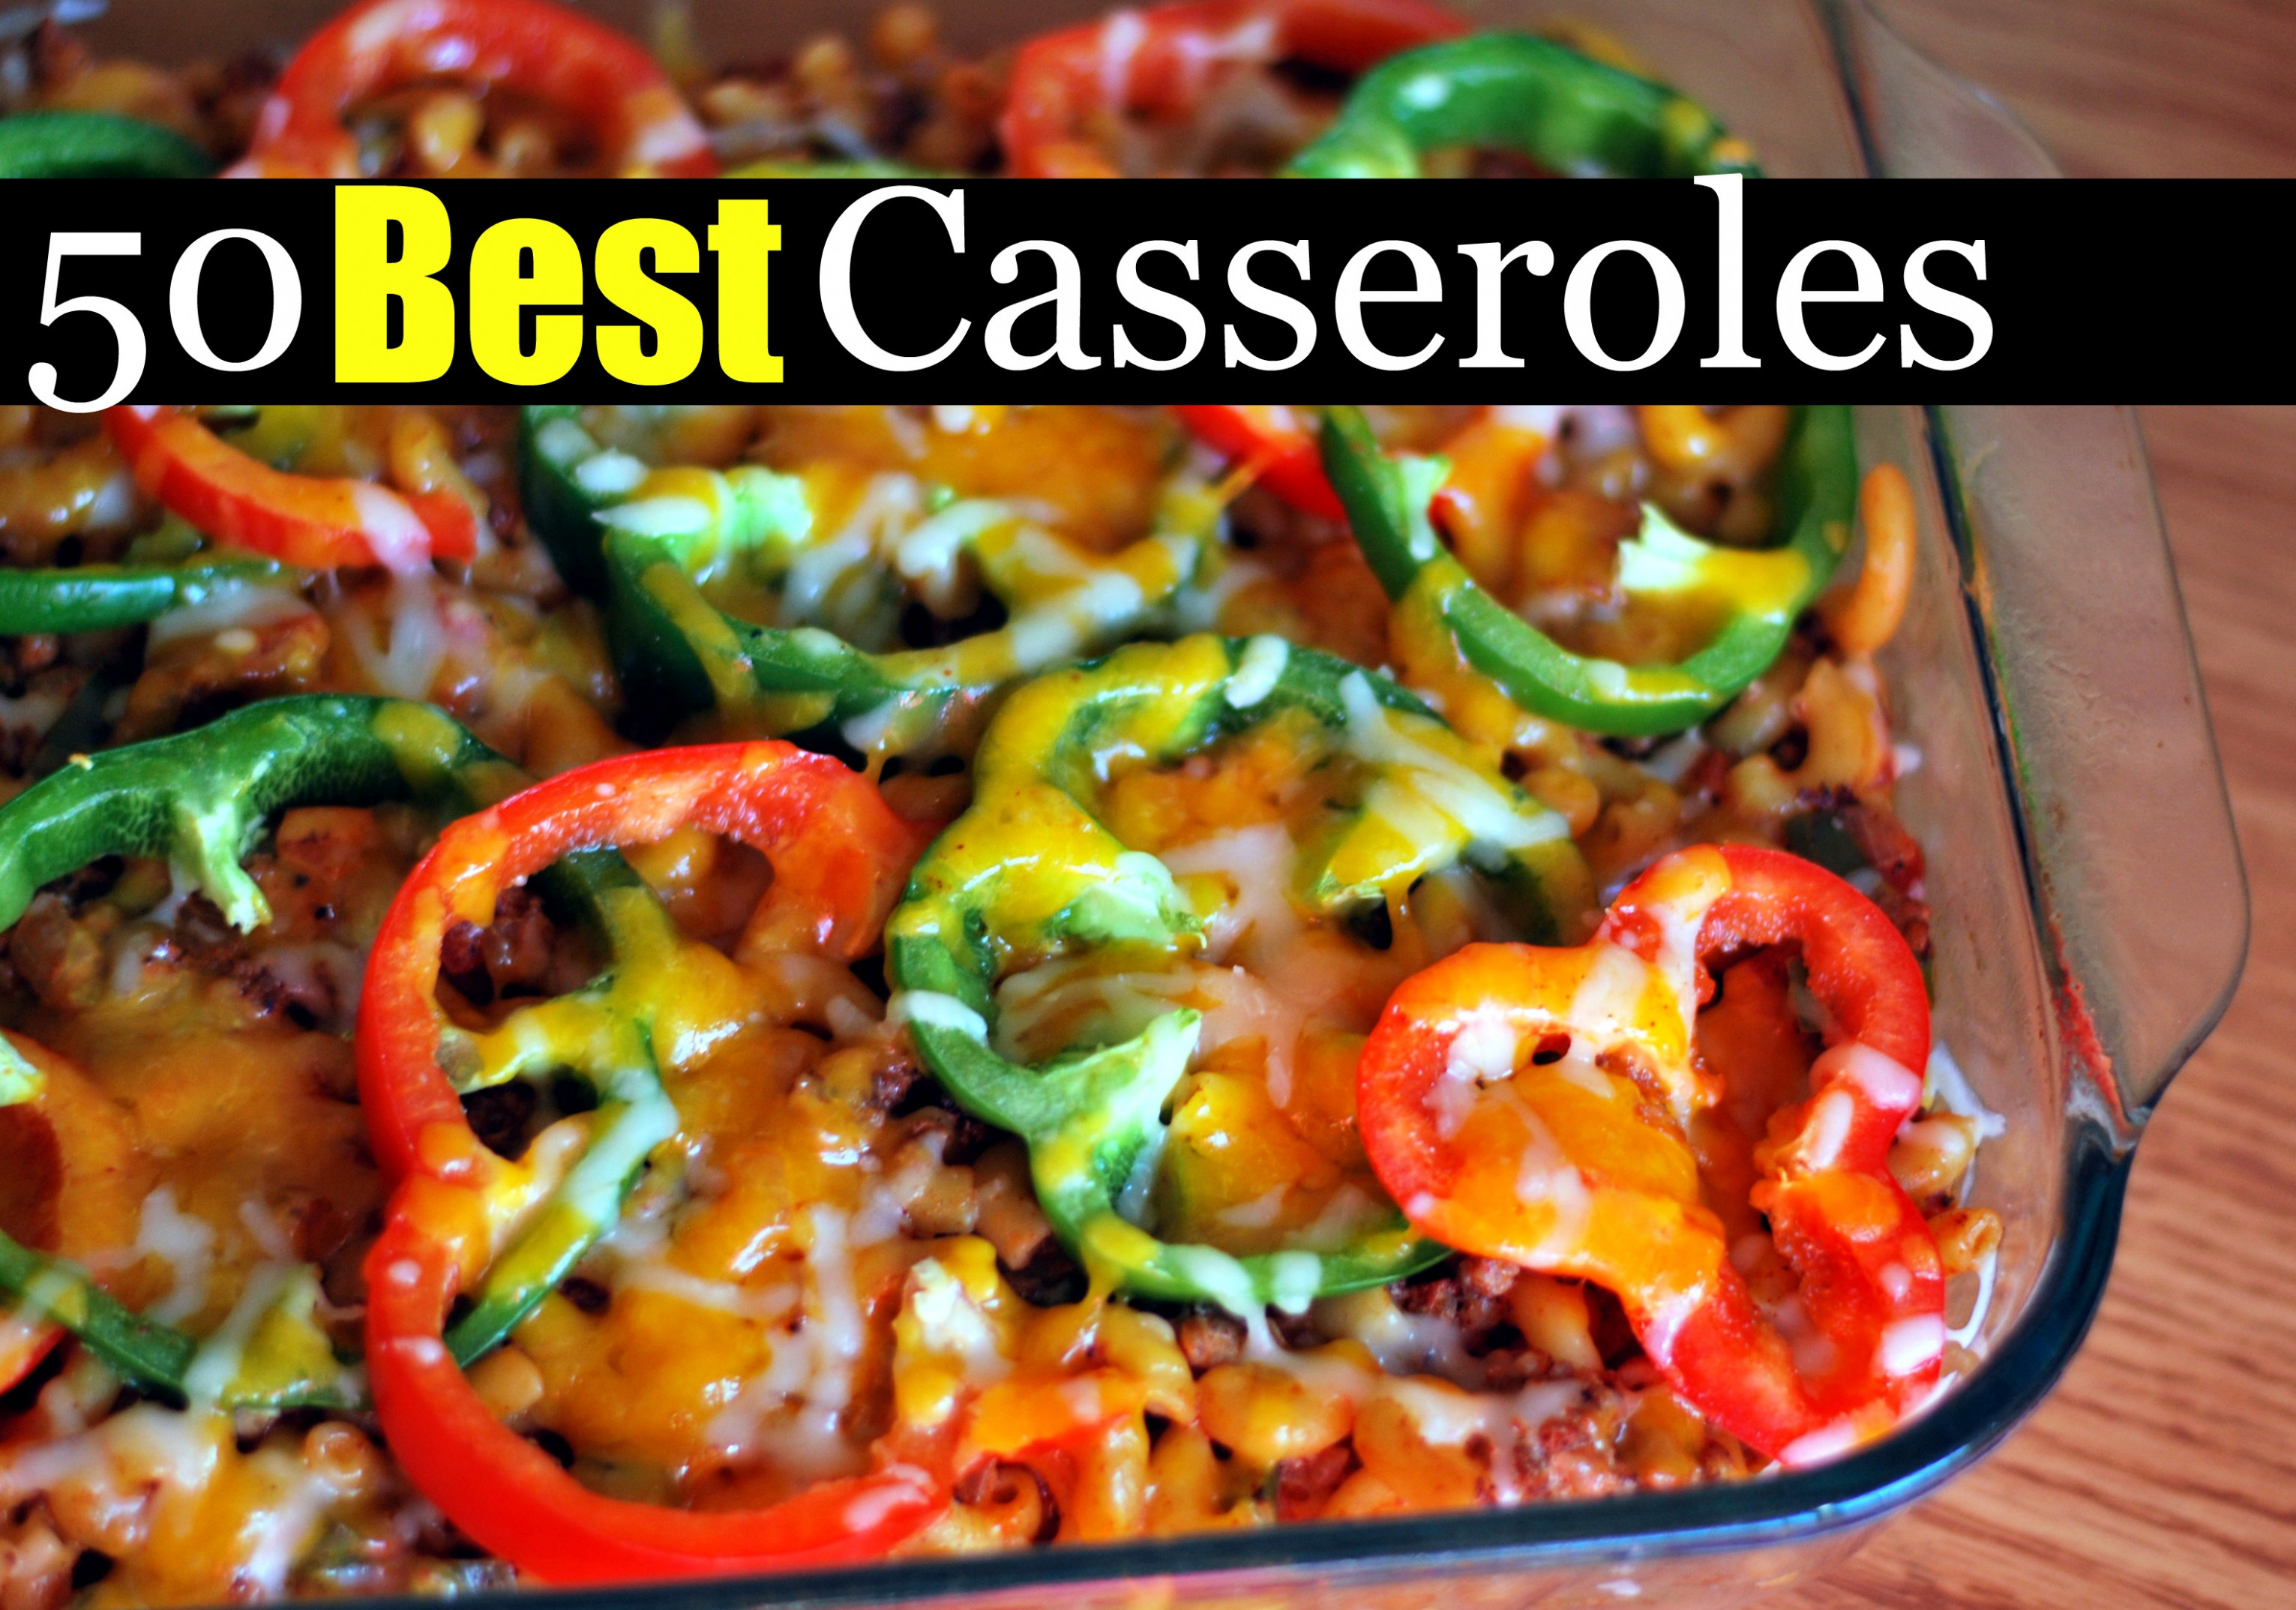 50 Best Casseroles - Aunt Bee's Recipes